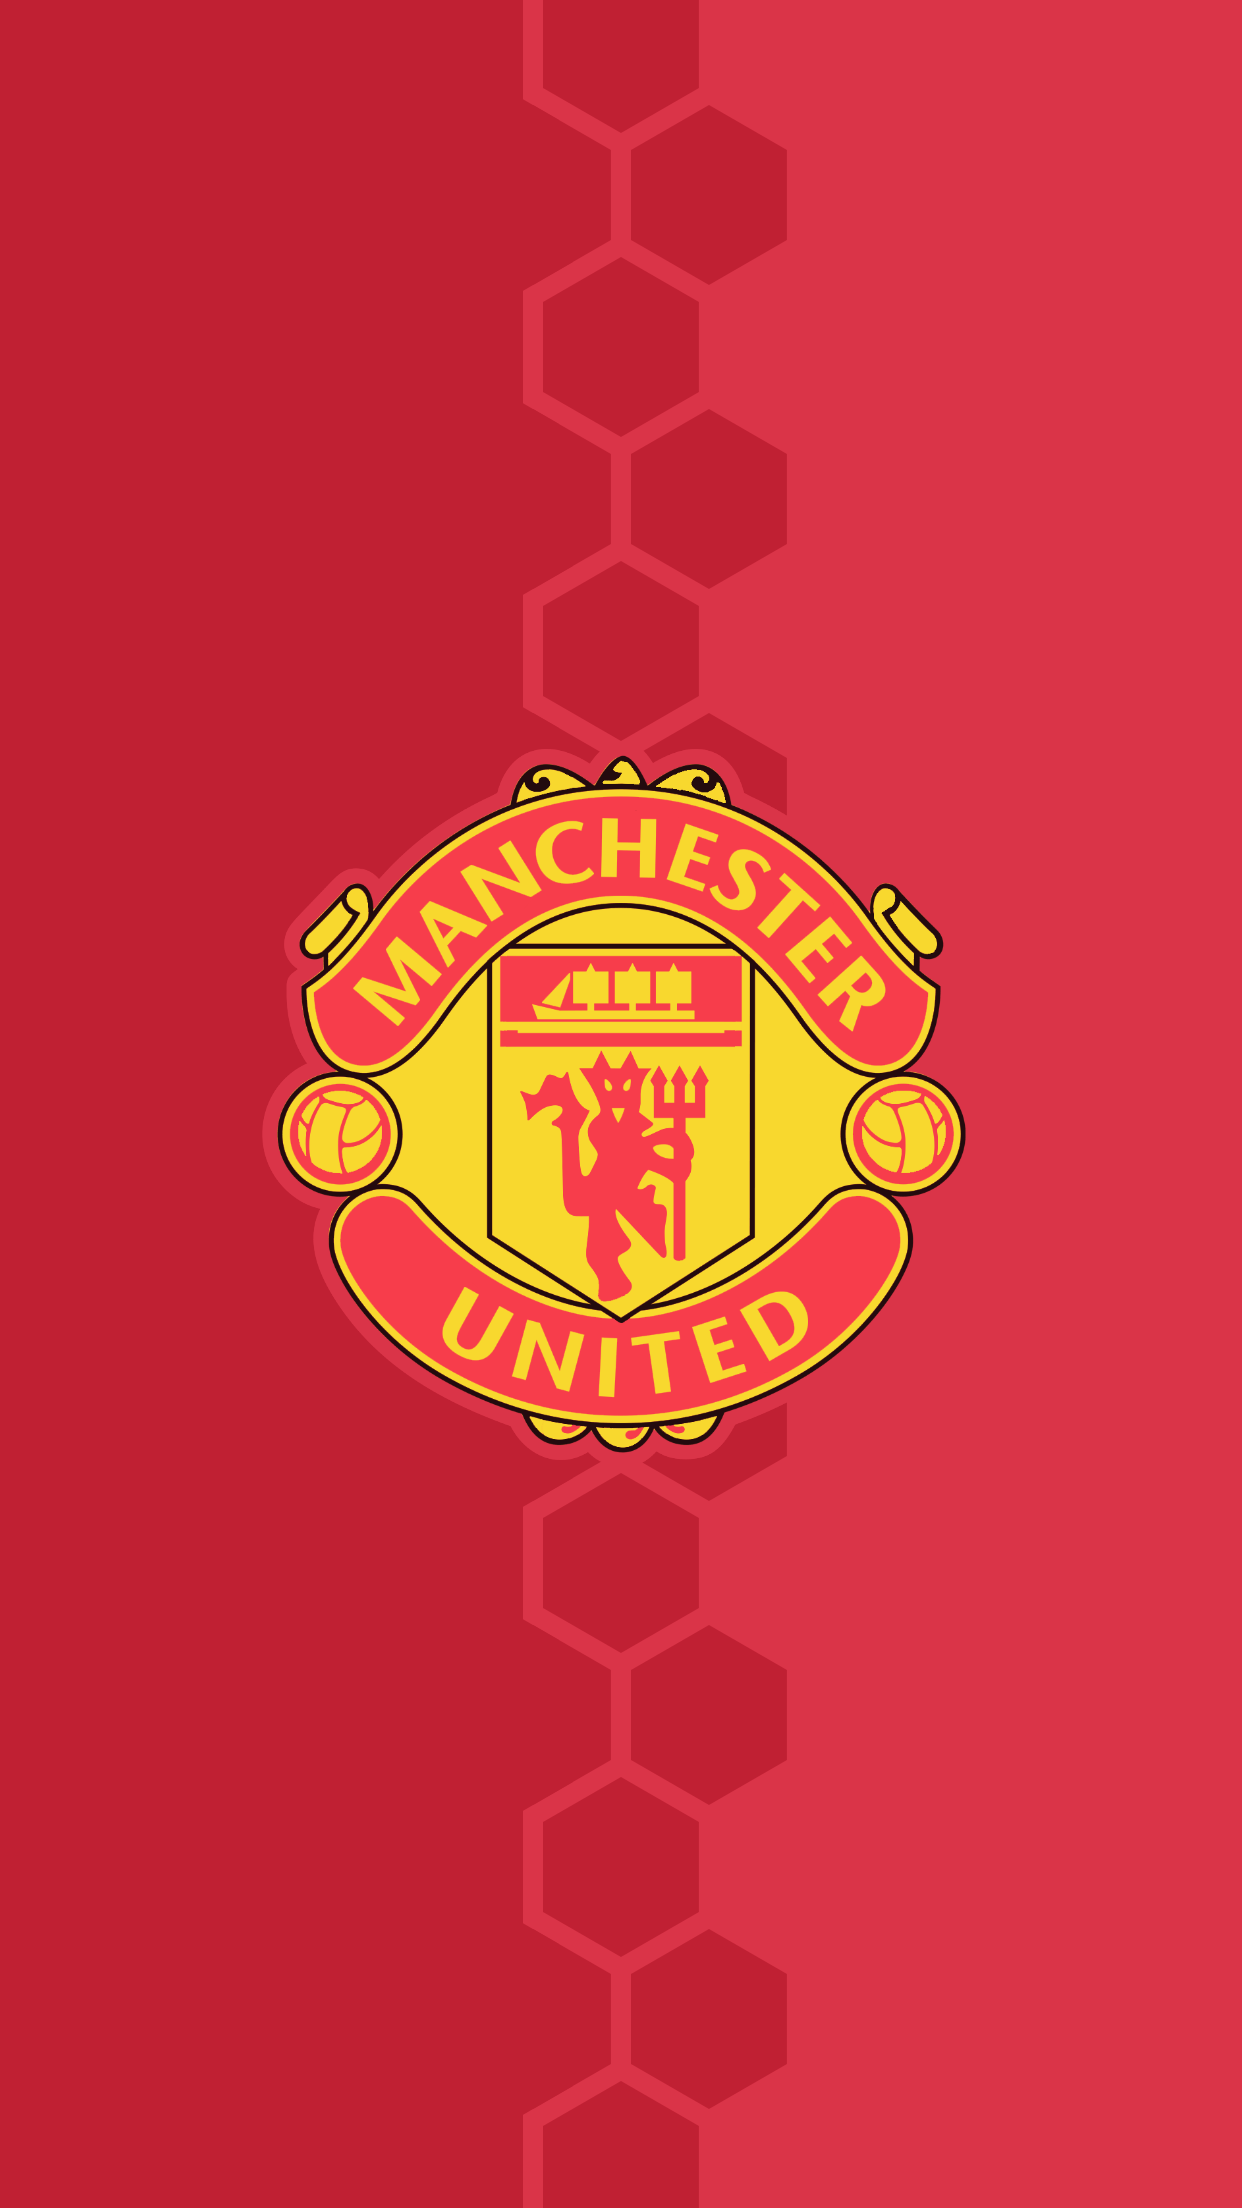 Manchester united 4k wallpapers wallpaper cave - Manchester united latest wallpapers hd ...